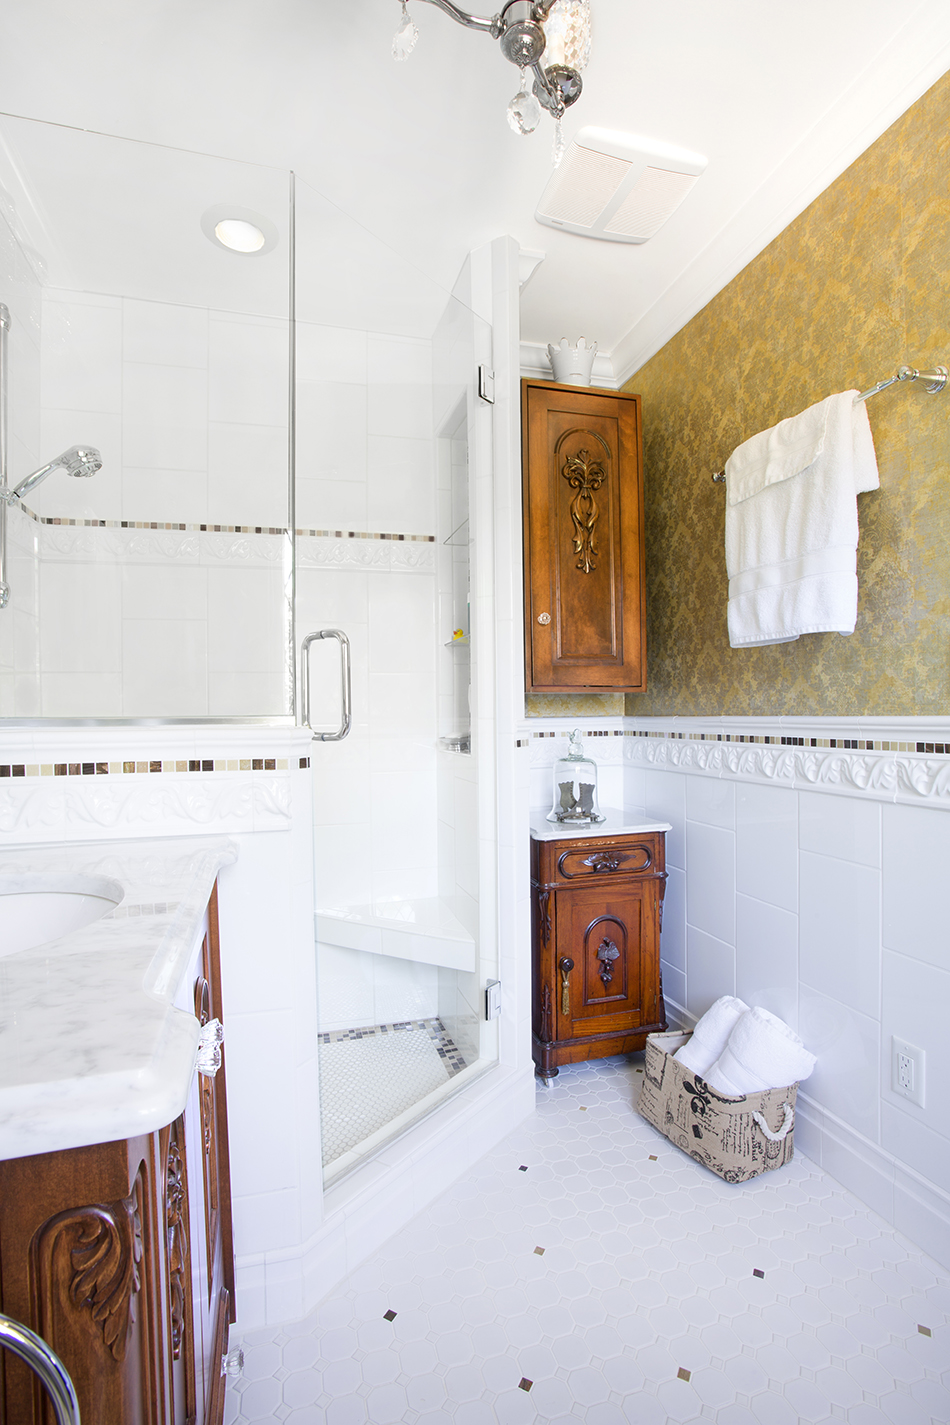 glass-angled-shower-tile-wainscoting-historic-renovation-east-side-milwaukee